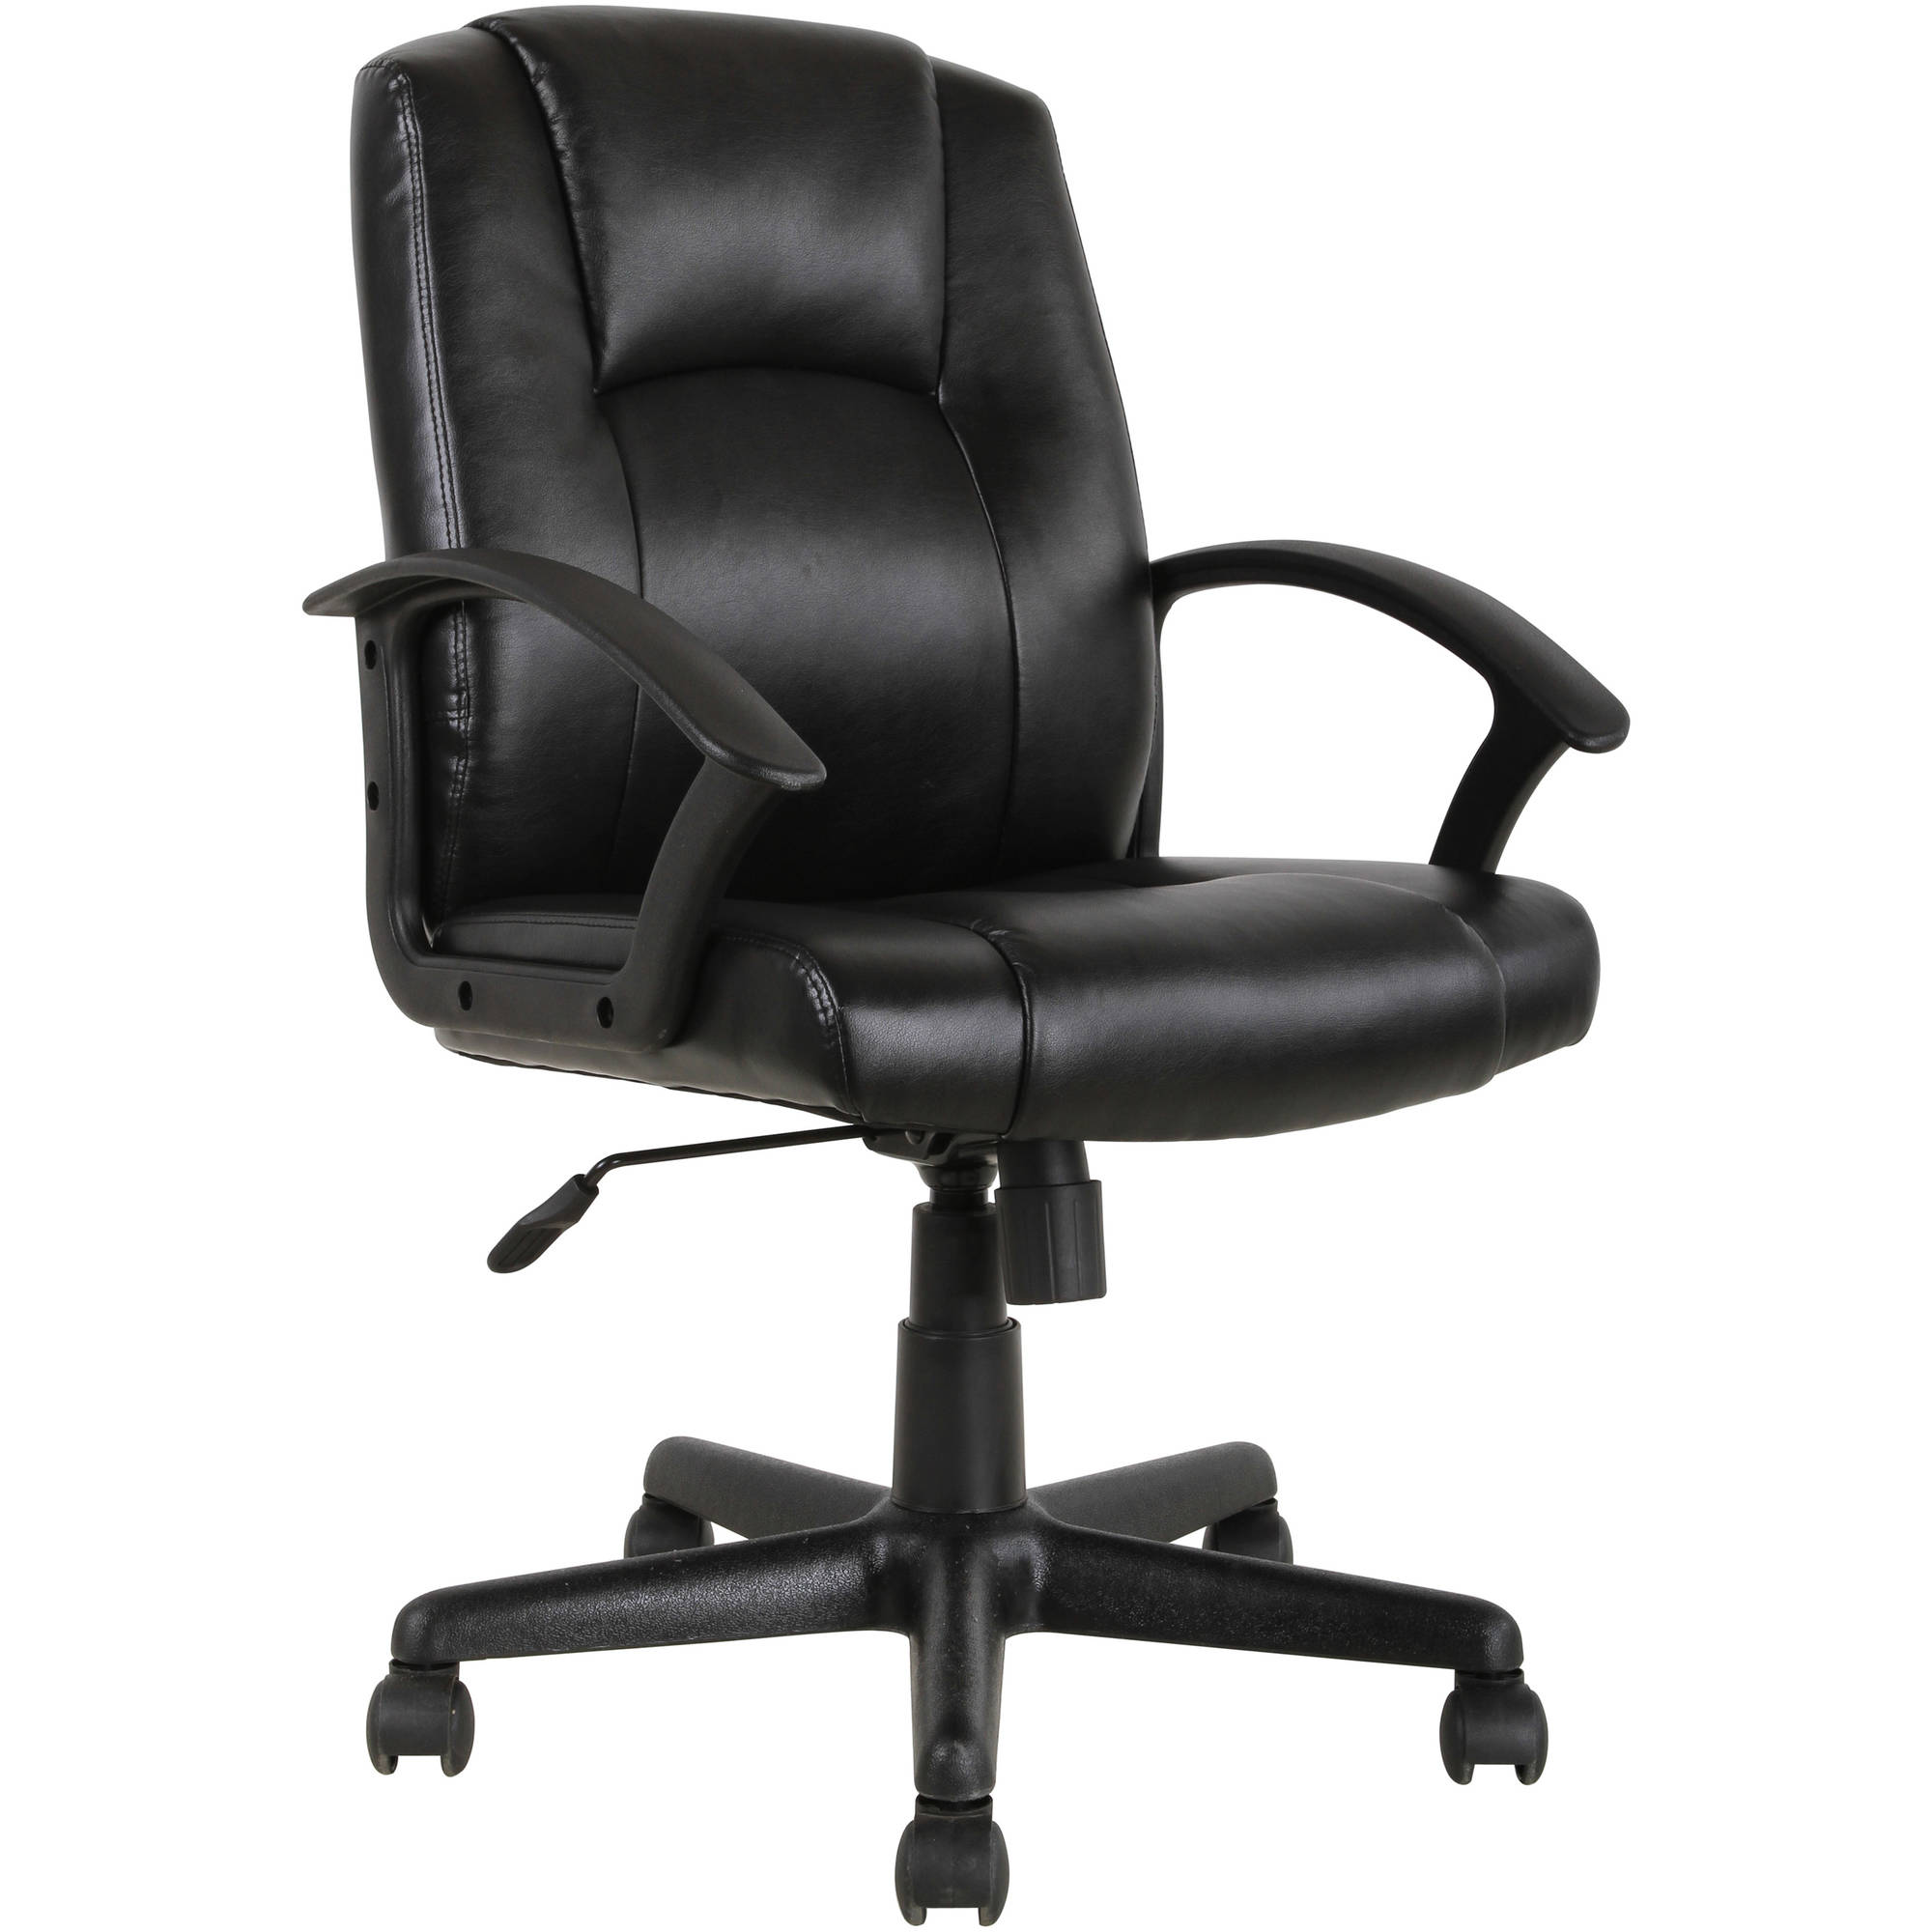 walmart leather office chair Mainstays Mid-Back Leather Office Chair, Black - Walmart.com